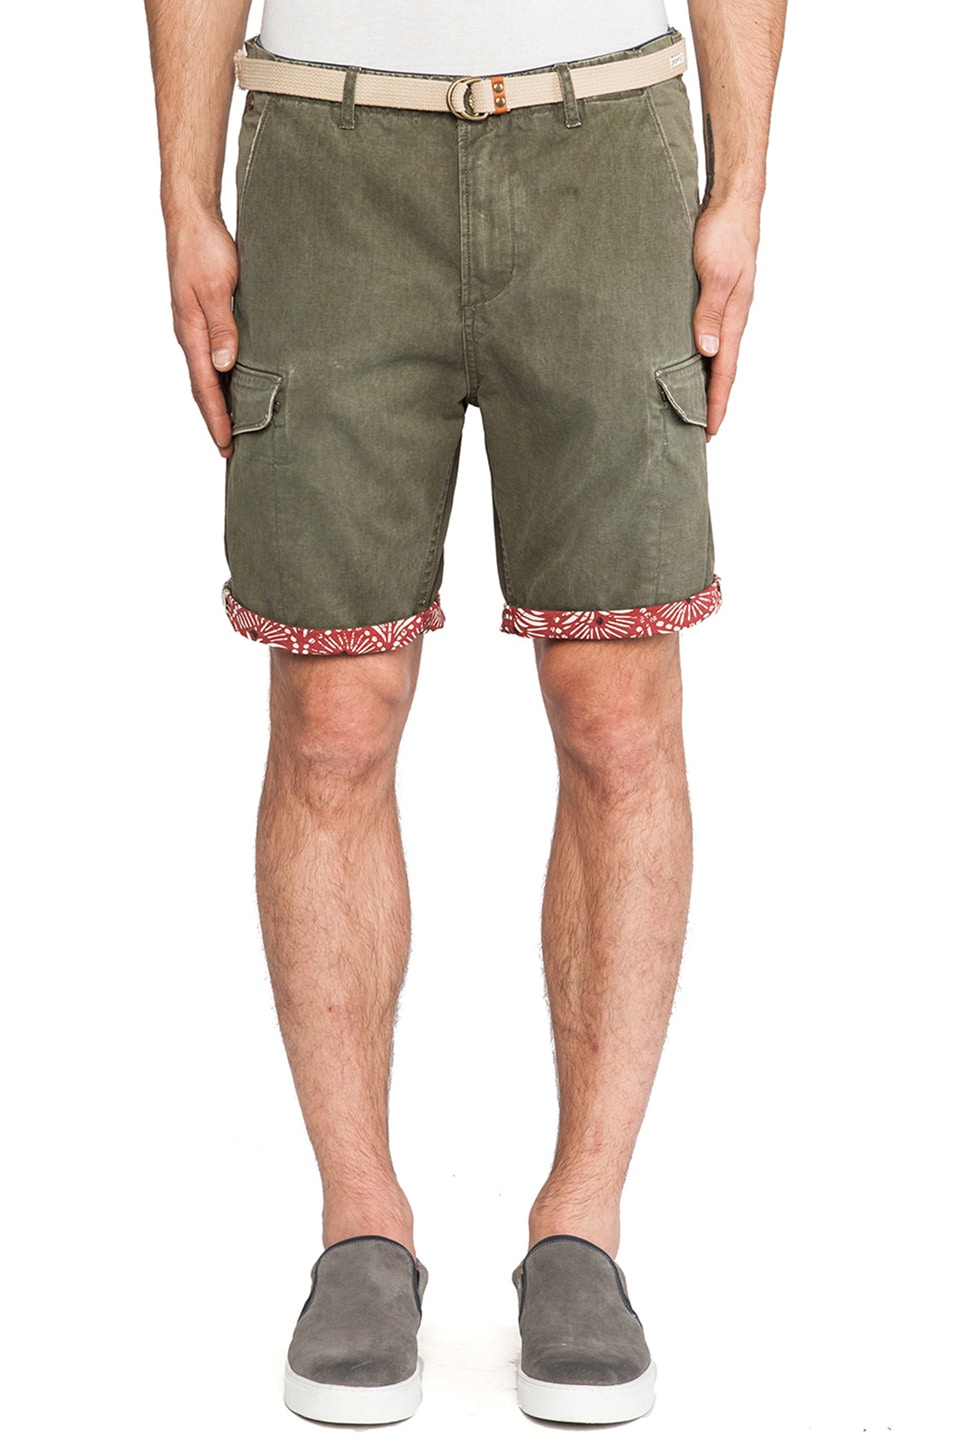 Scotch & Soda Cargo Short in Olive Green